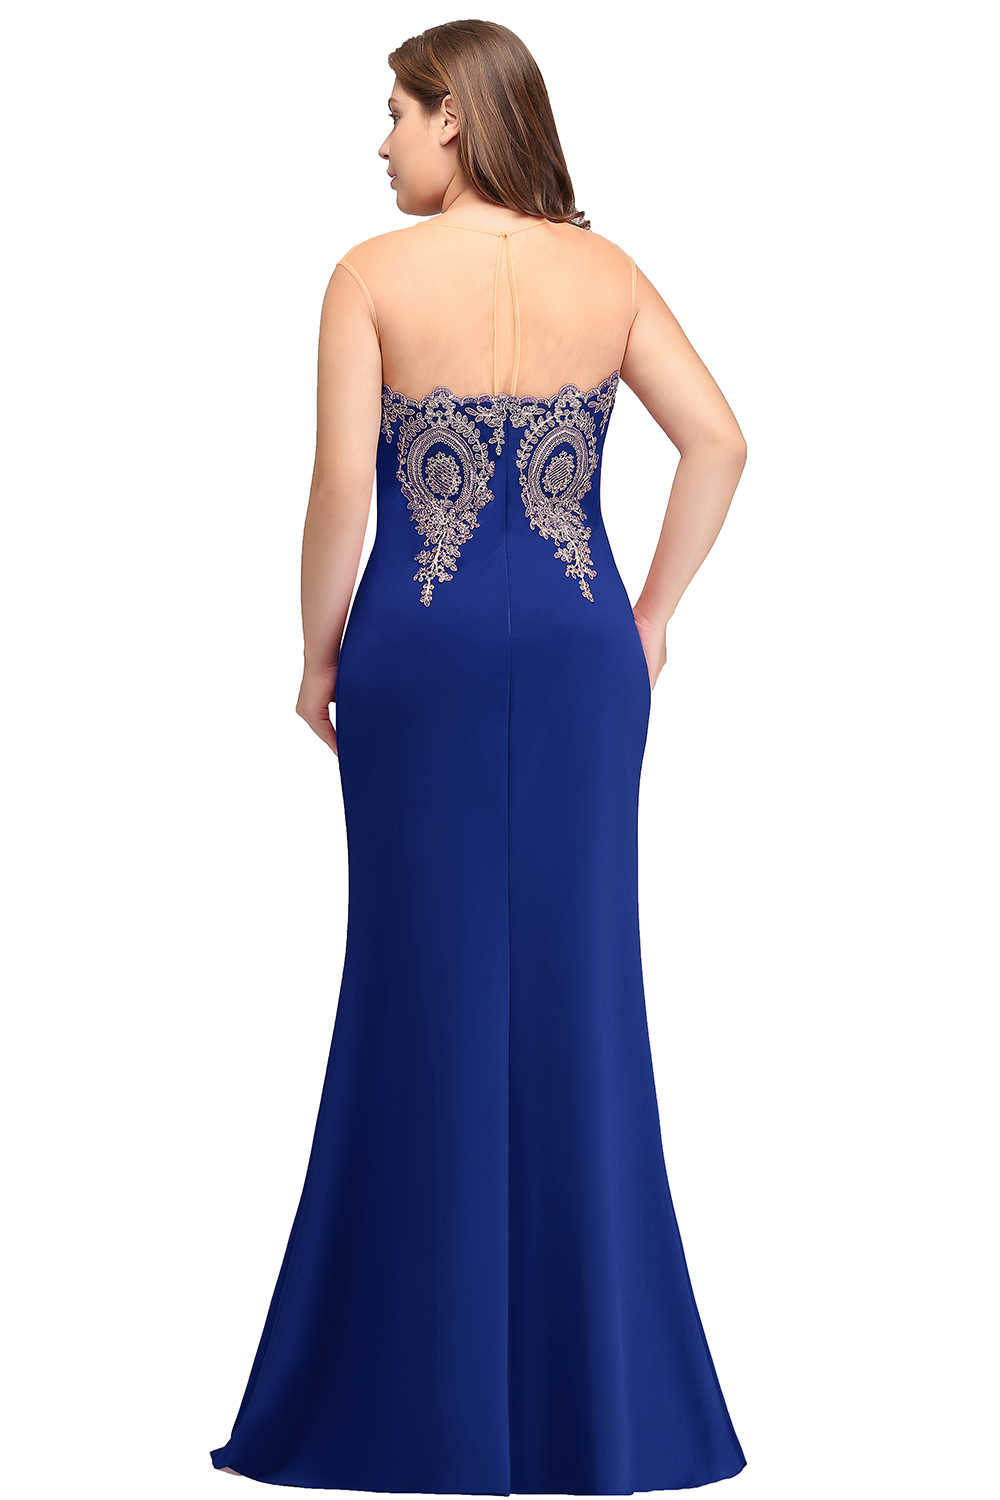 bac09ab5e56 ... Royal blue 2019 Mother Of The Bride Dresses Plus Size Mermaid  Sleeveless Satin Long Groom Mother ...